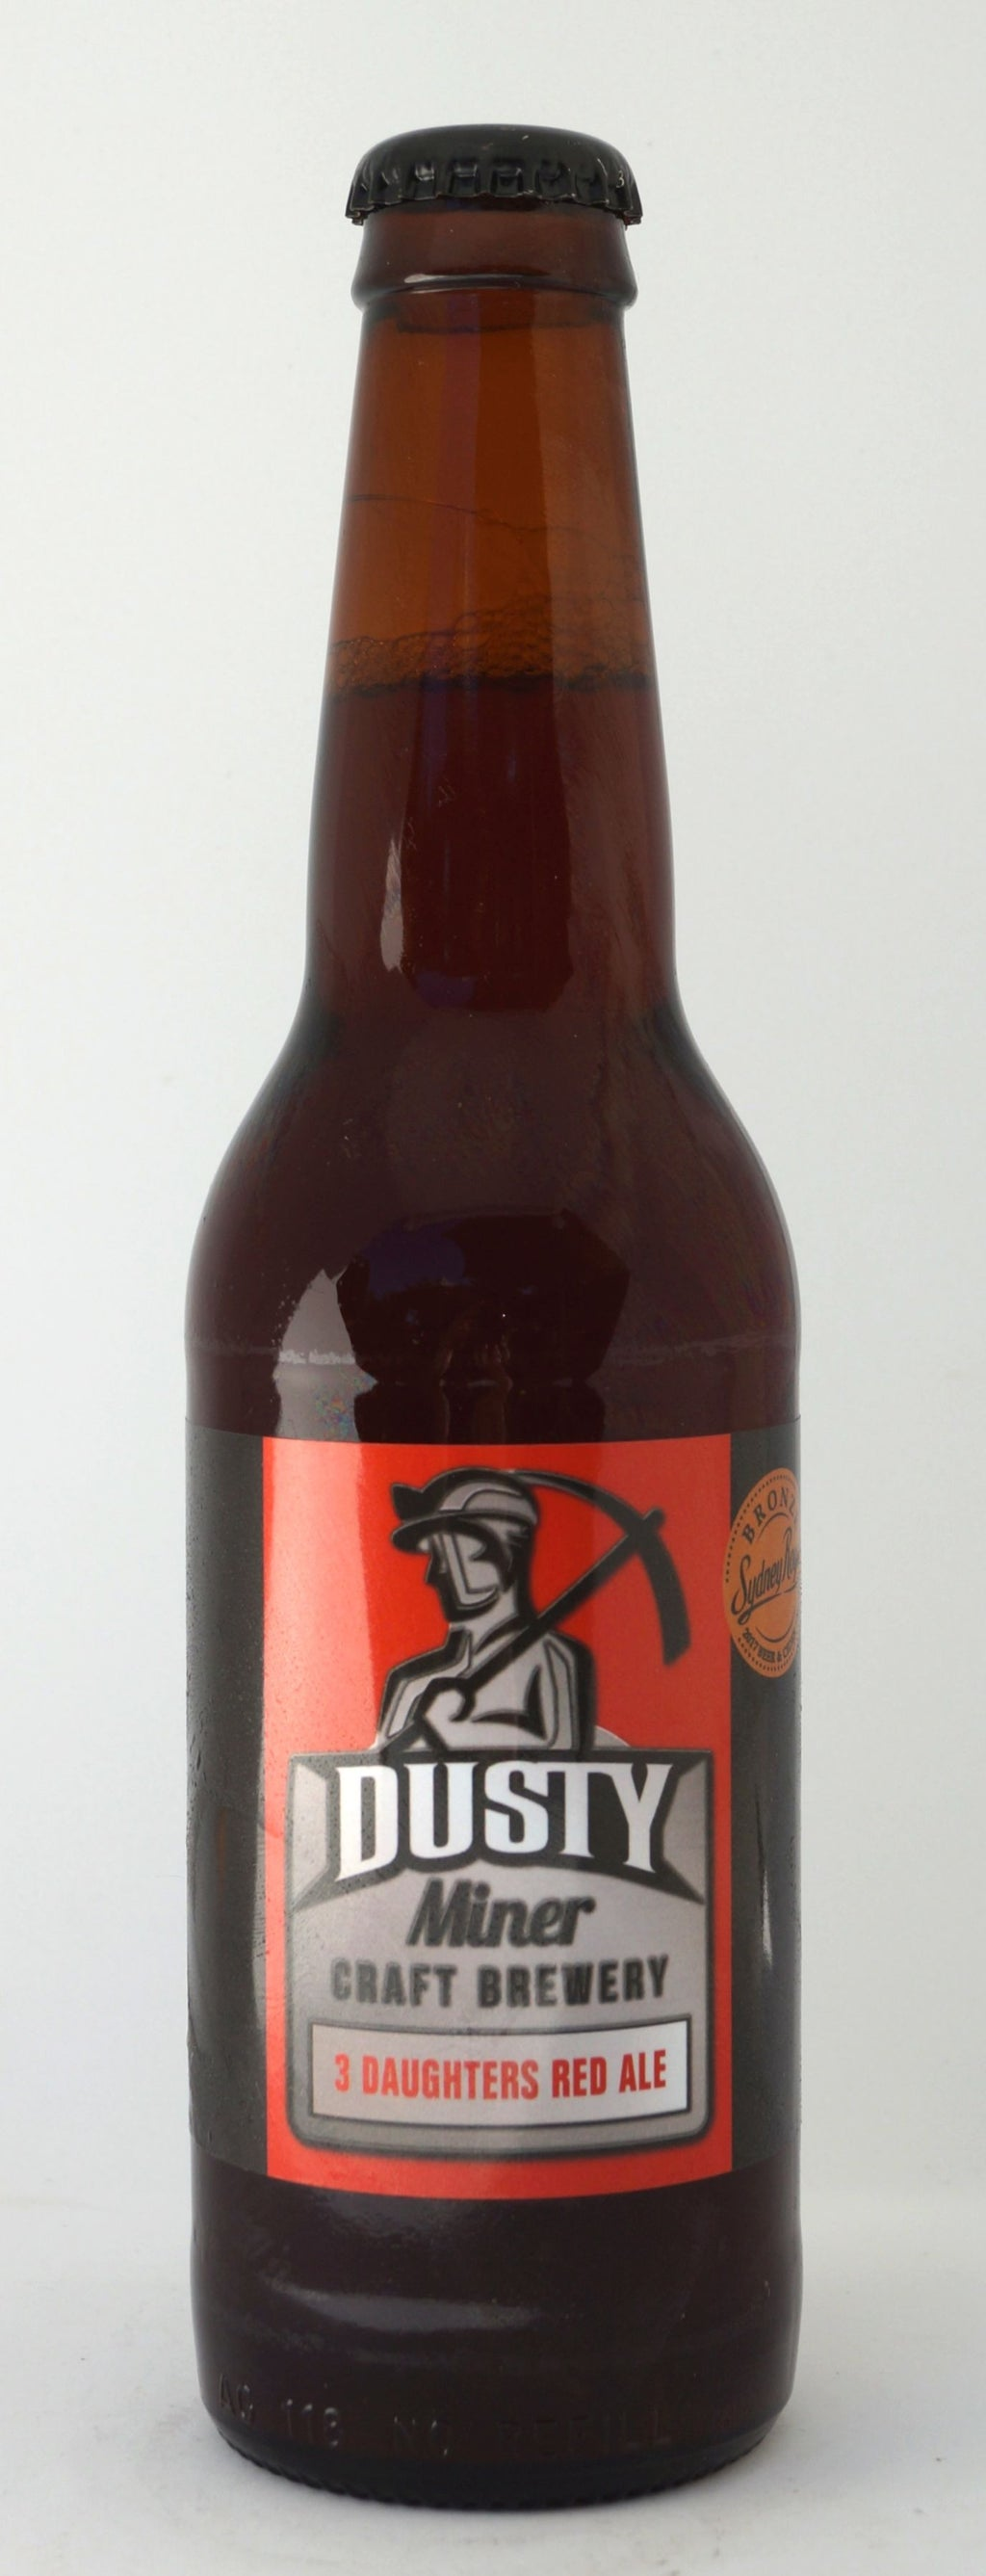 Dusty Miner 3 Daughters Red Ale